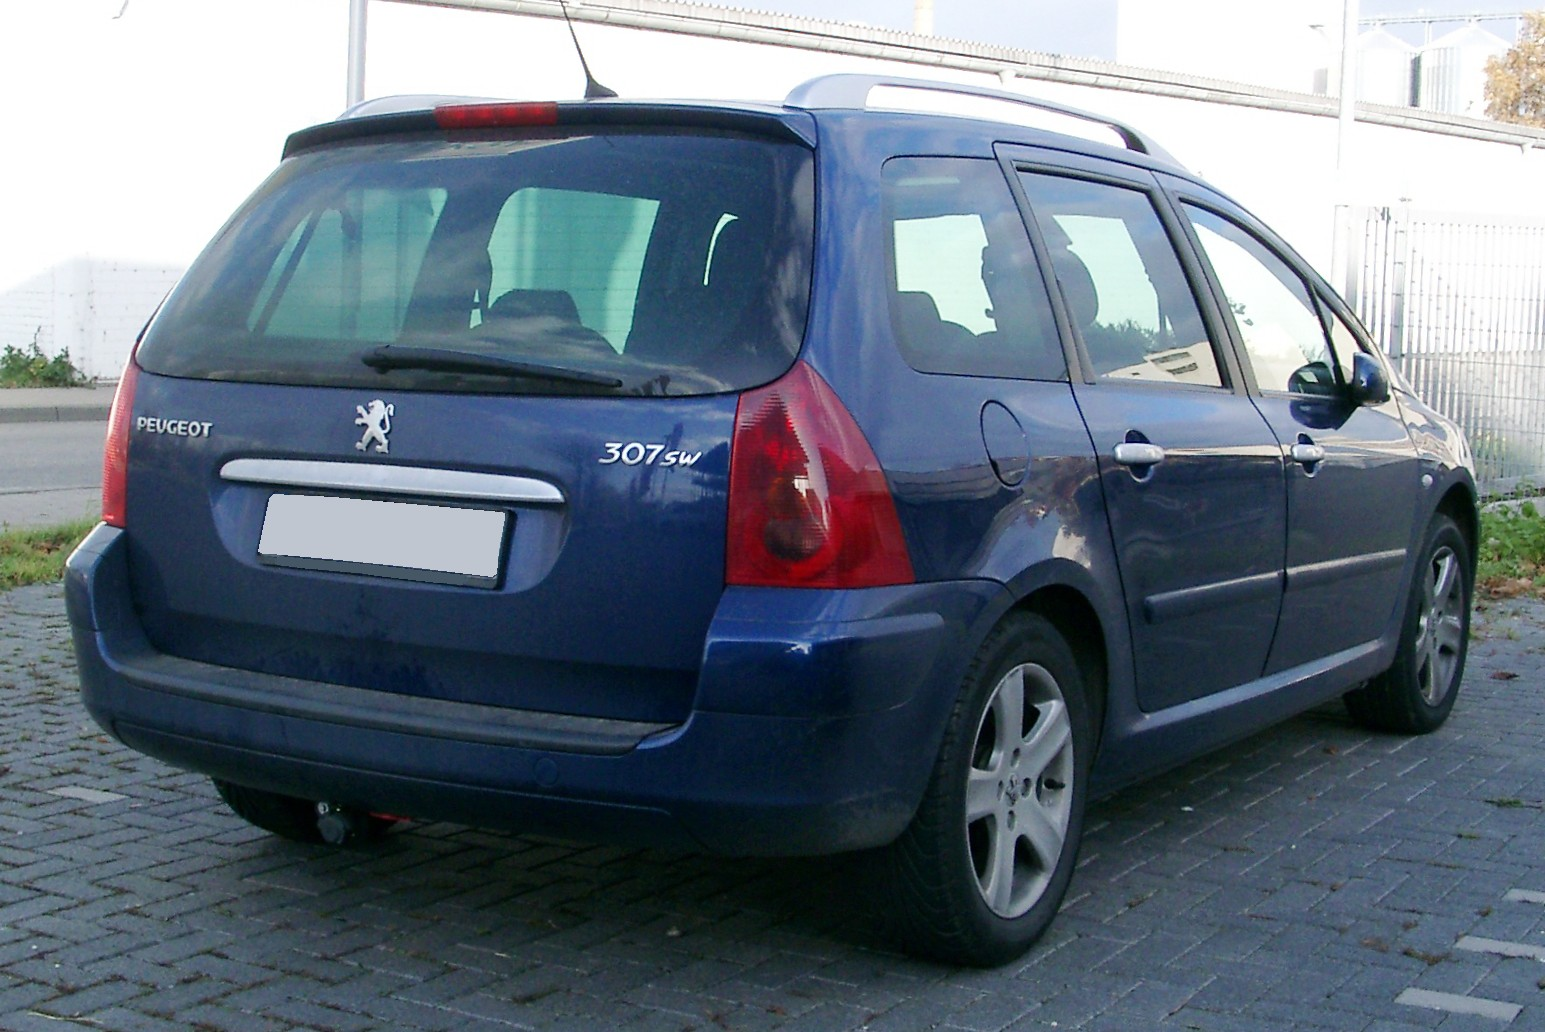 peugeot 307 station wagon 2012 images #10